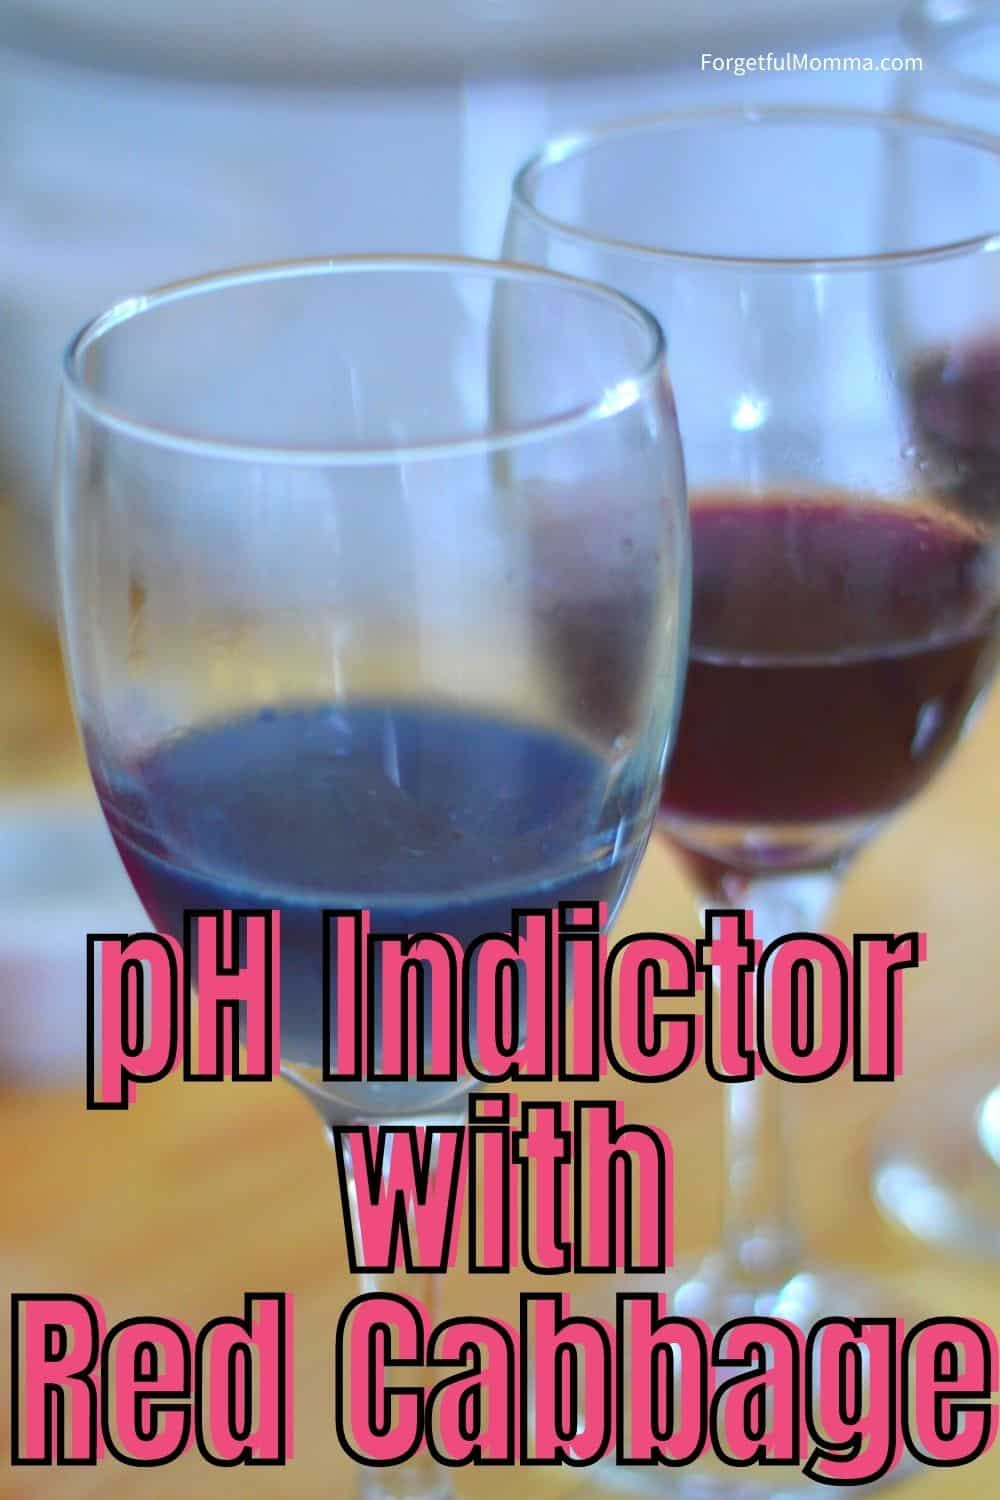 pH Indictor with Red Cabbage